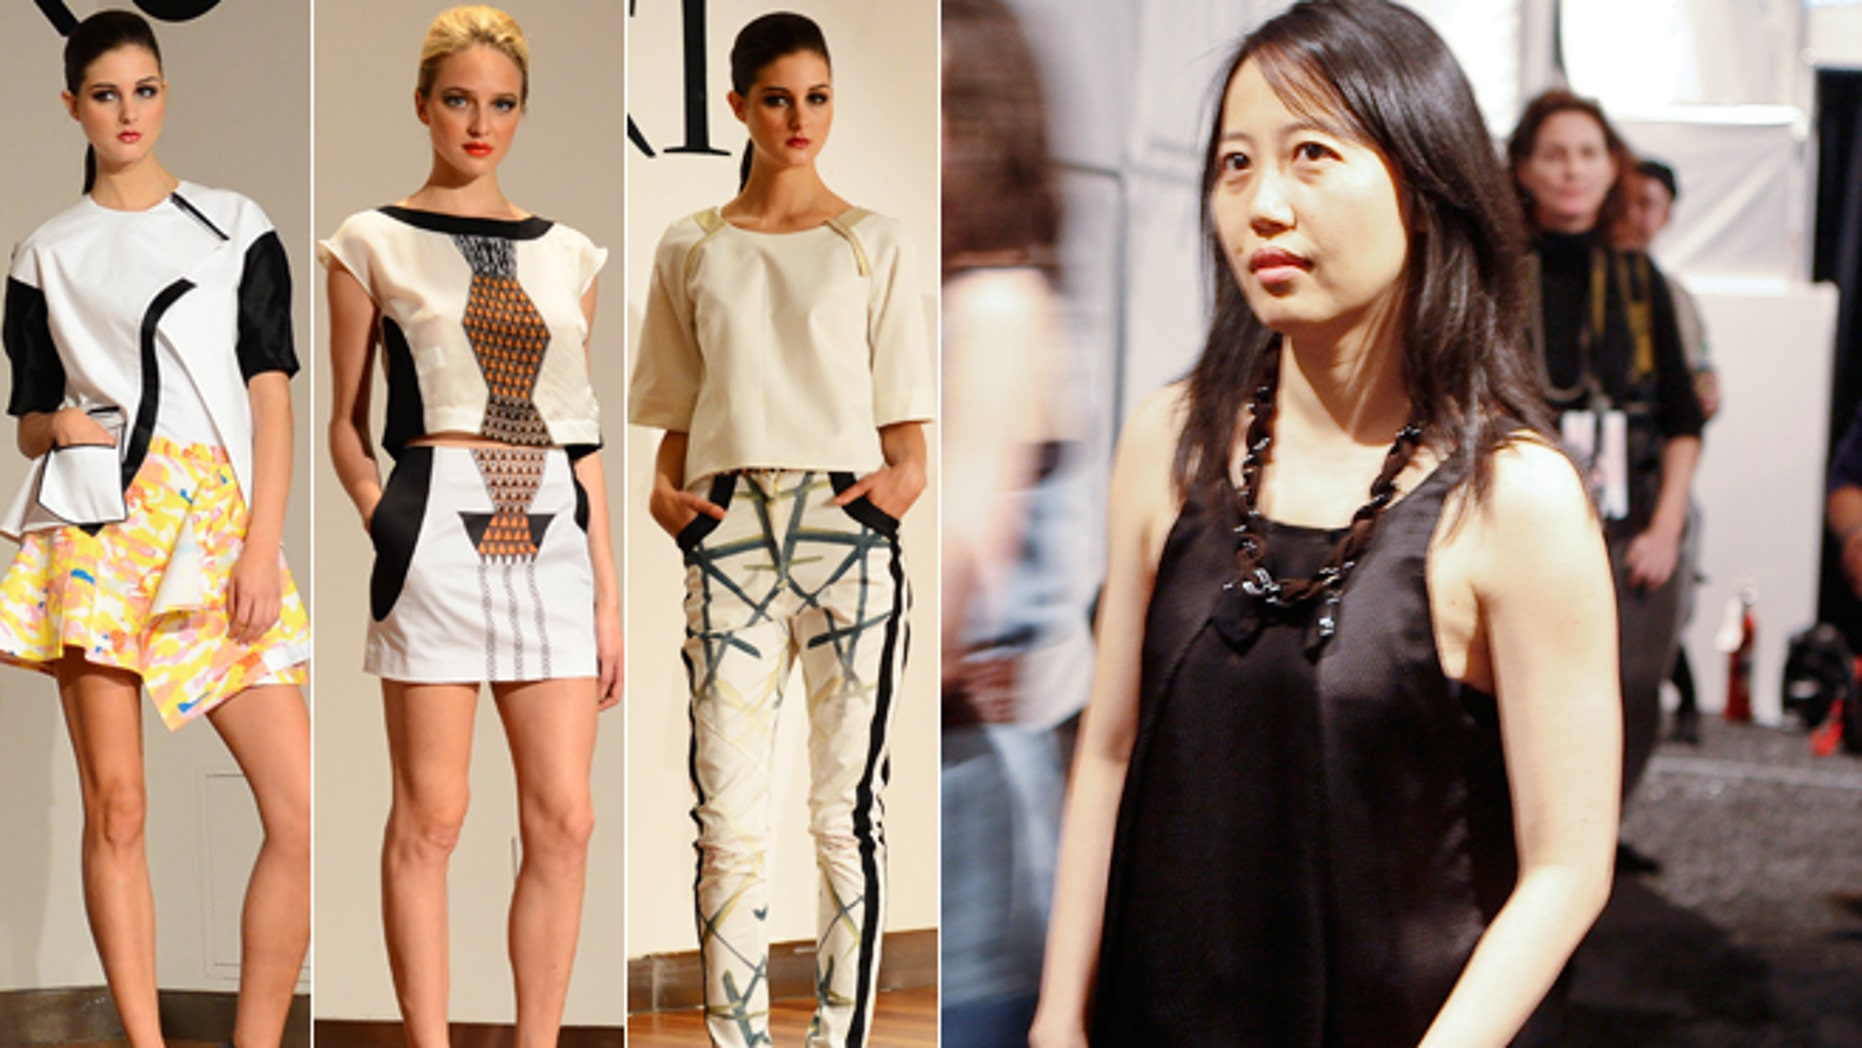 Designer Wenlan Chia, right, is pictured next to designs by her fashion students.